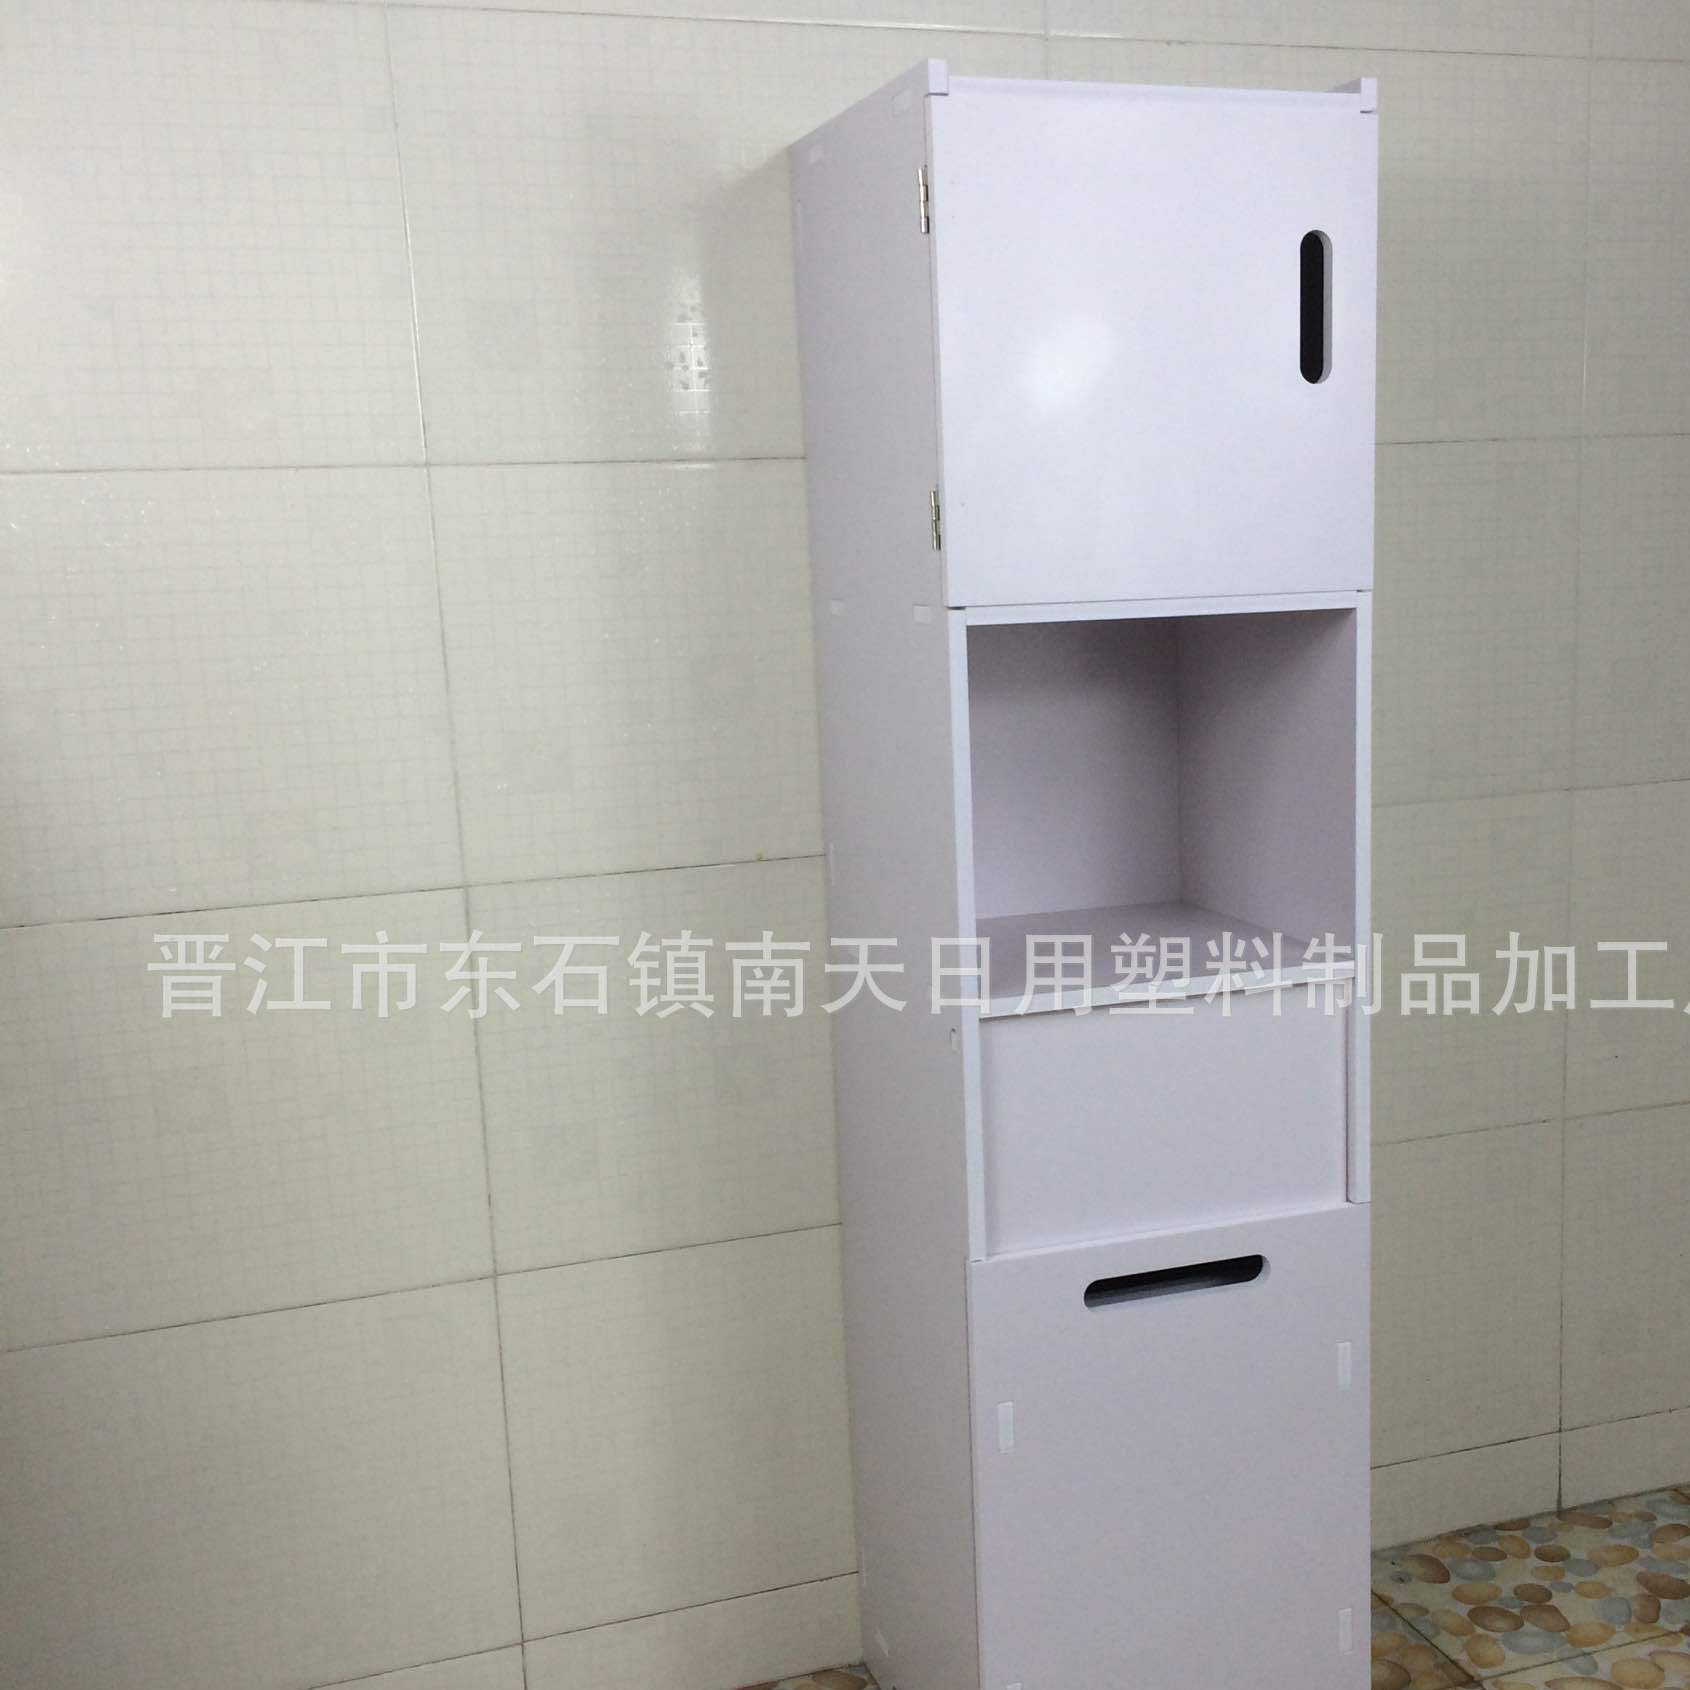 Cabinet of toilet edge bathroom side cabinet toilet waterproof store content cabinet take out paper towel ark put content horn ark to replace hair